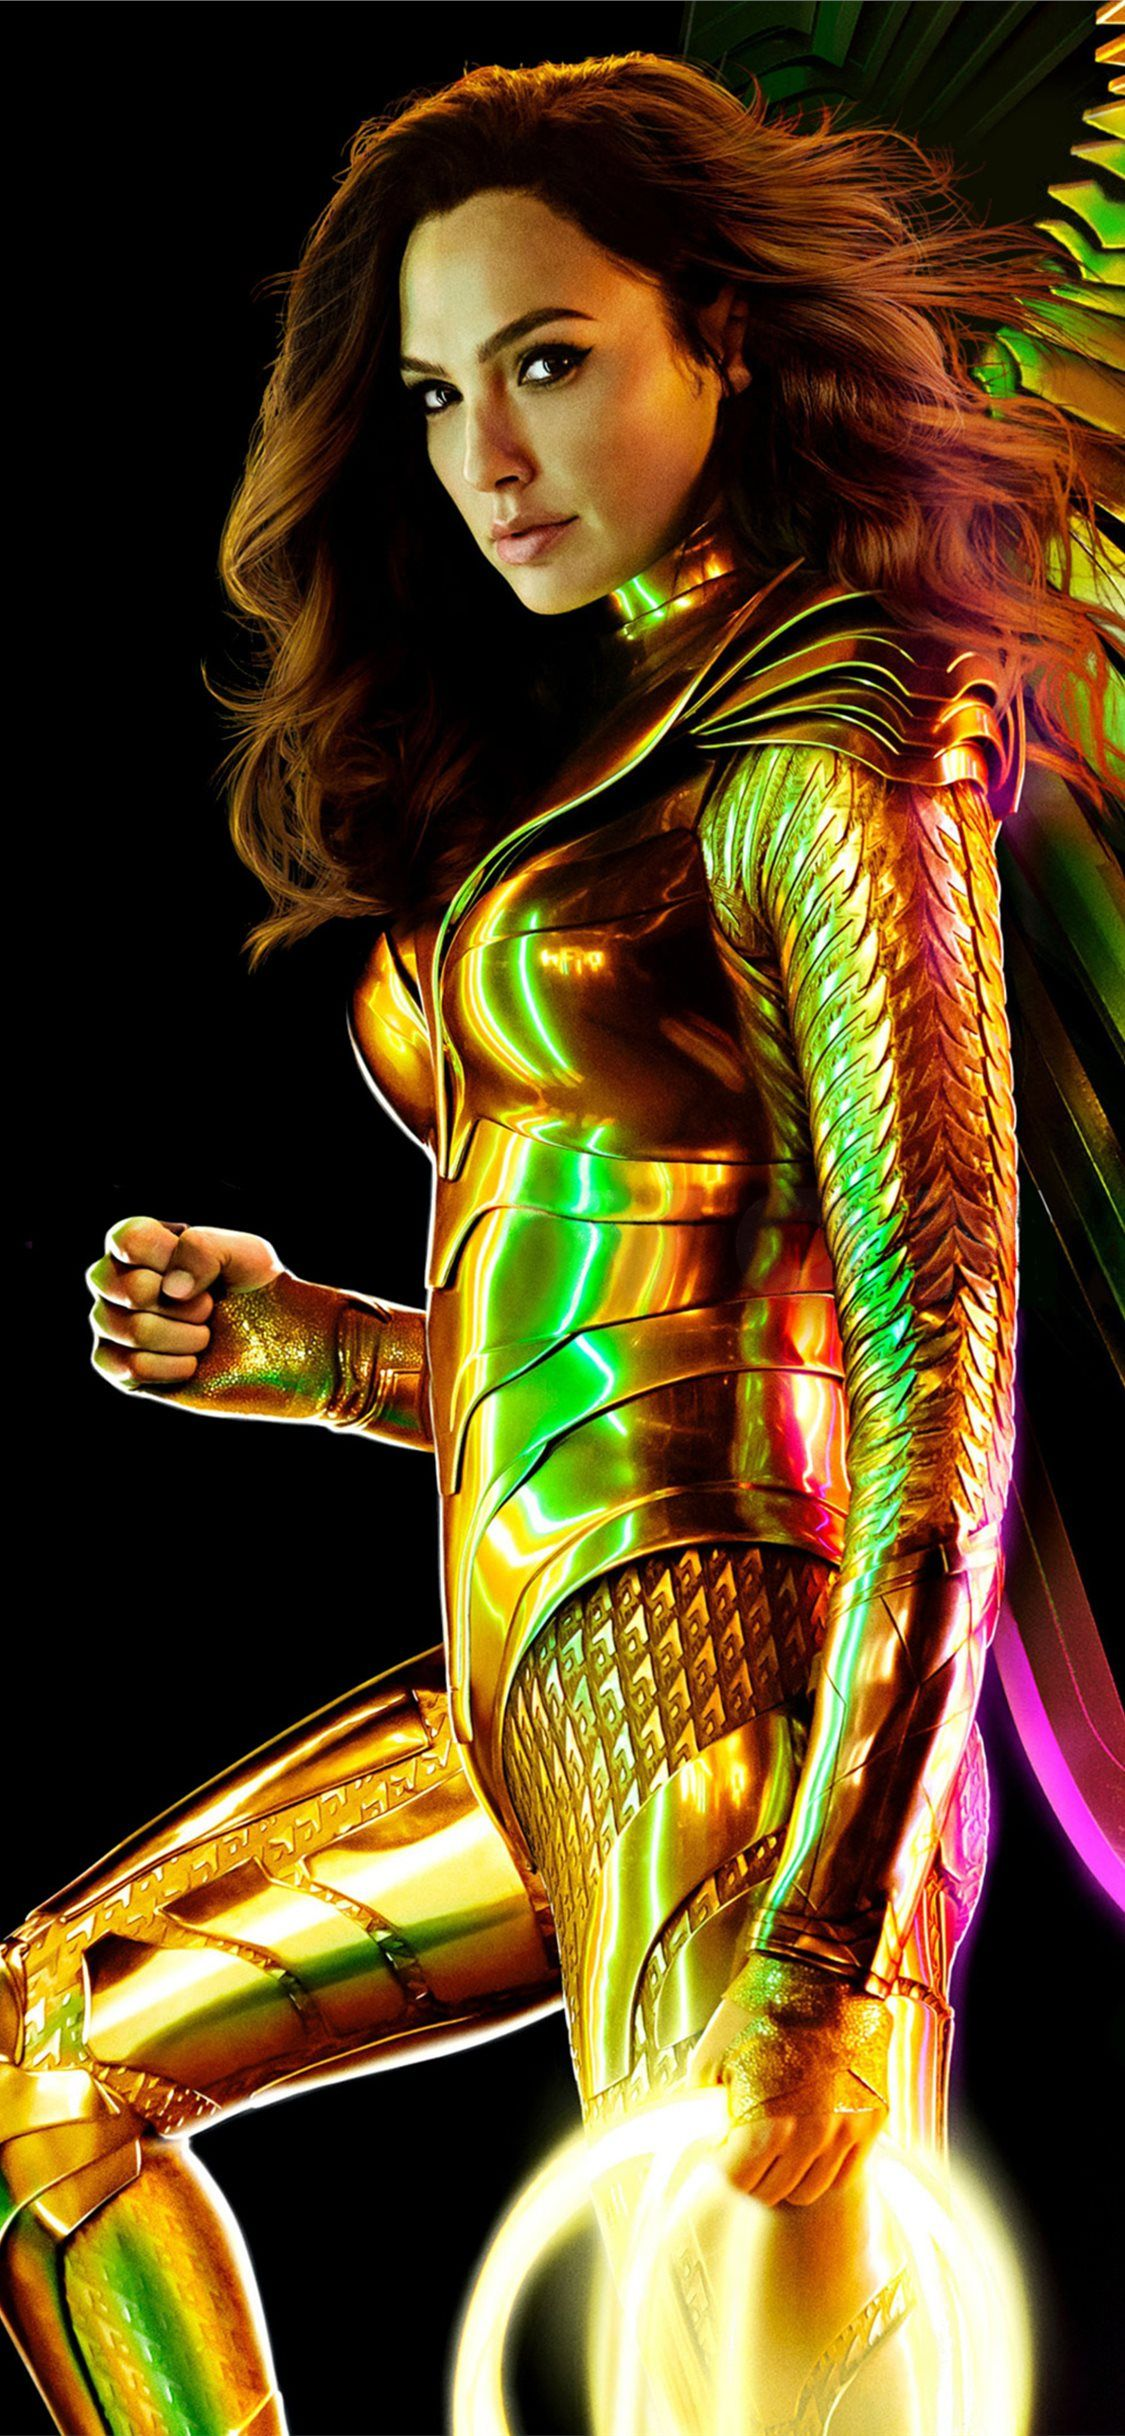 wonder woman 1984 4k 2020 iPhone 11 Wallpapers en 2020